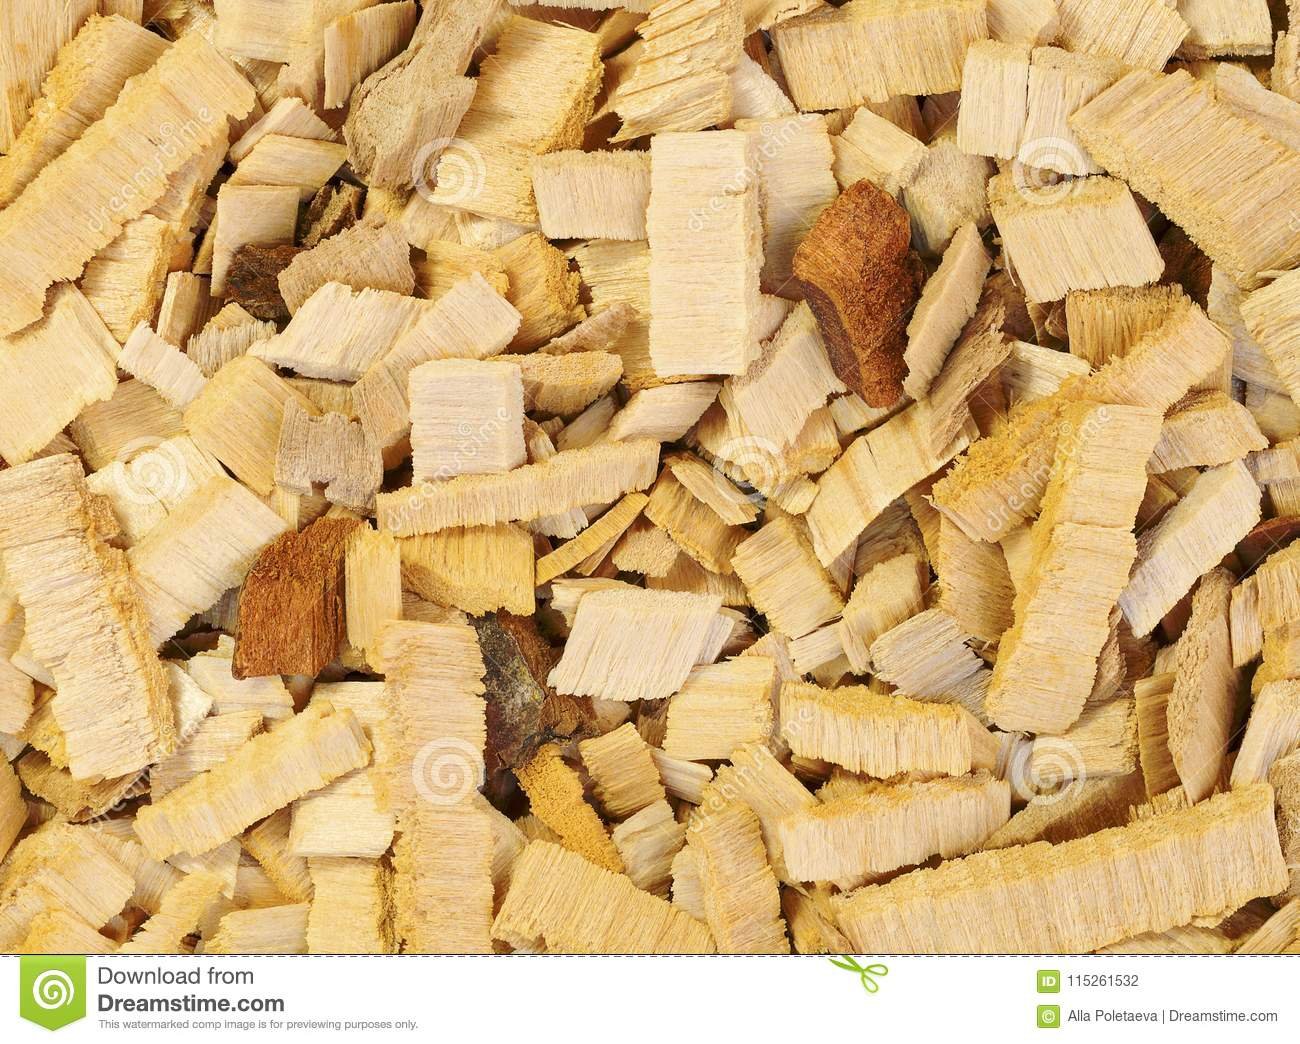 Close up wood chips of alder-tree for smoking or recycle. Texture for background.